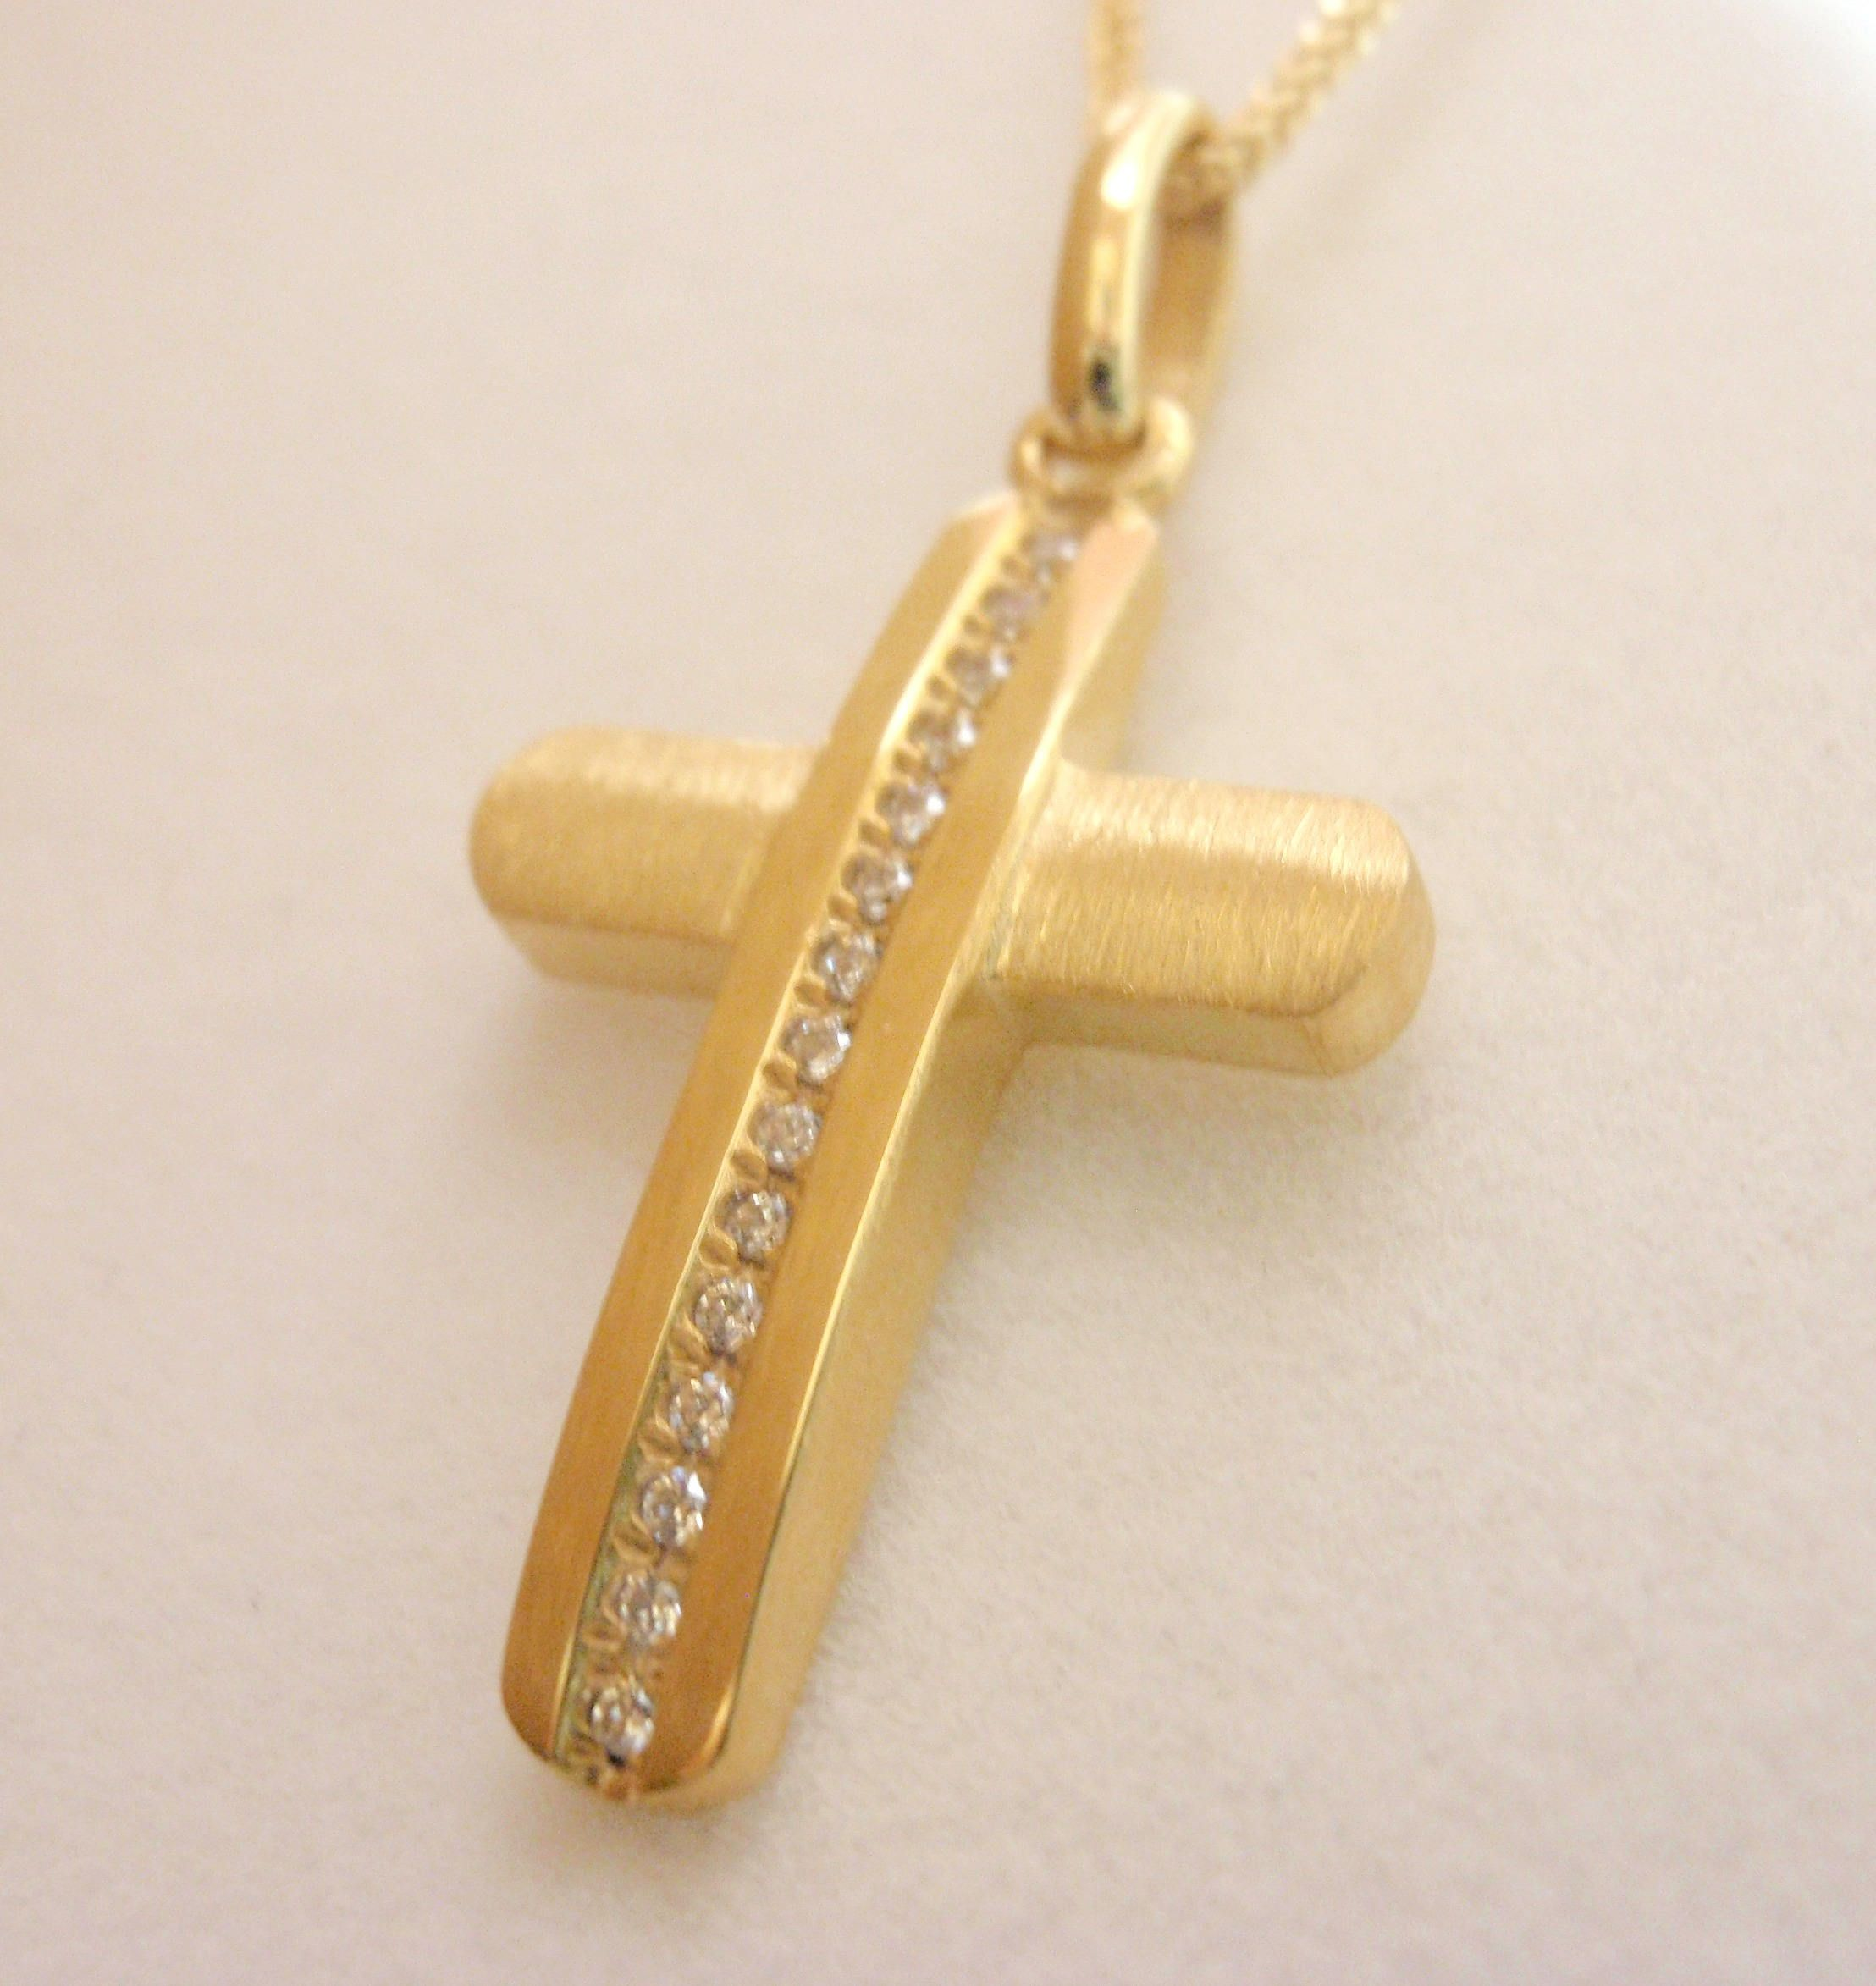 dainty silver photo baptism il ruji necklace pendant listing gallery charm fullxfull tiny cross